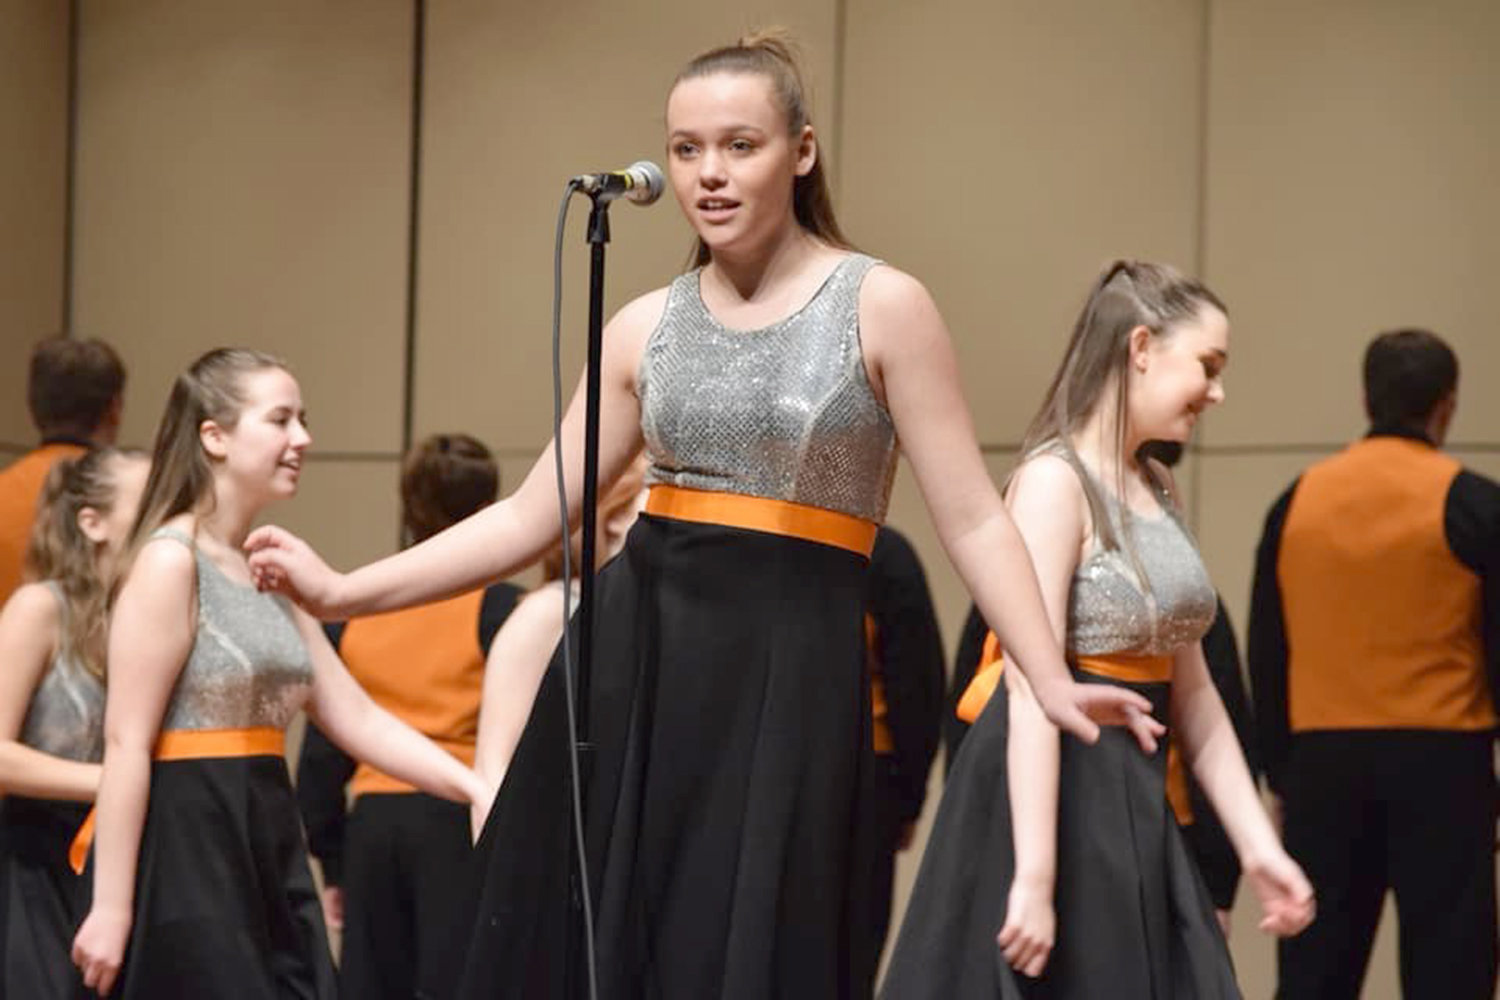 VOCAL FOCUS — Kayla Bush, a vocalist in Rome Free Academy's Rhapsody Show Choir, is shown during a recent performance. Rhapsody will host a performance tonight with the Rome Community Theatre Talent Team and the Denti Elementary Drama Club at the RFA auditorium. It begins at 7 p.m.